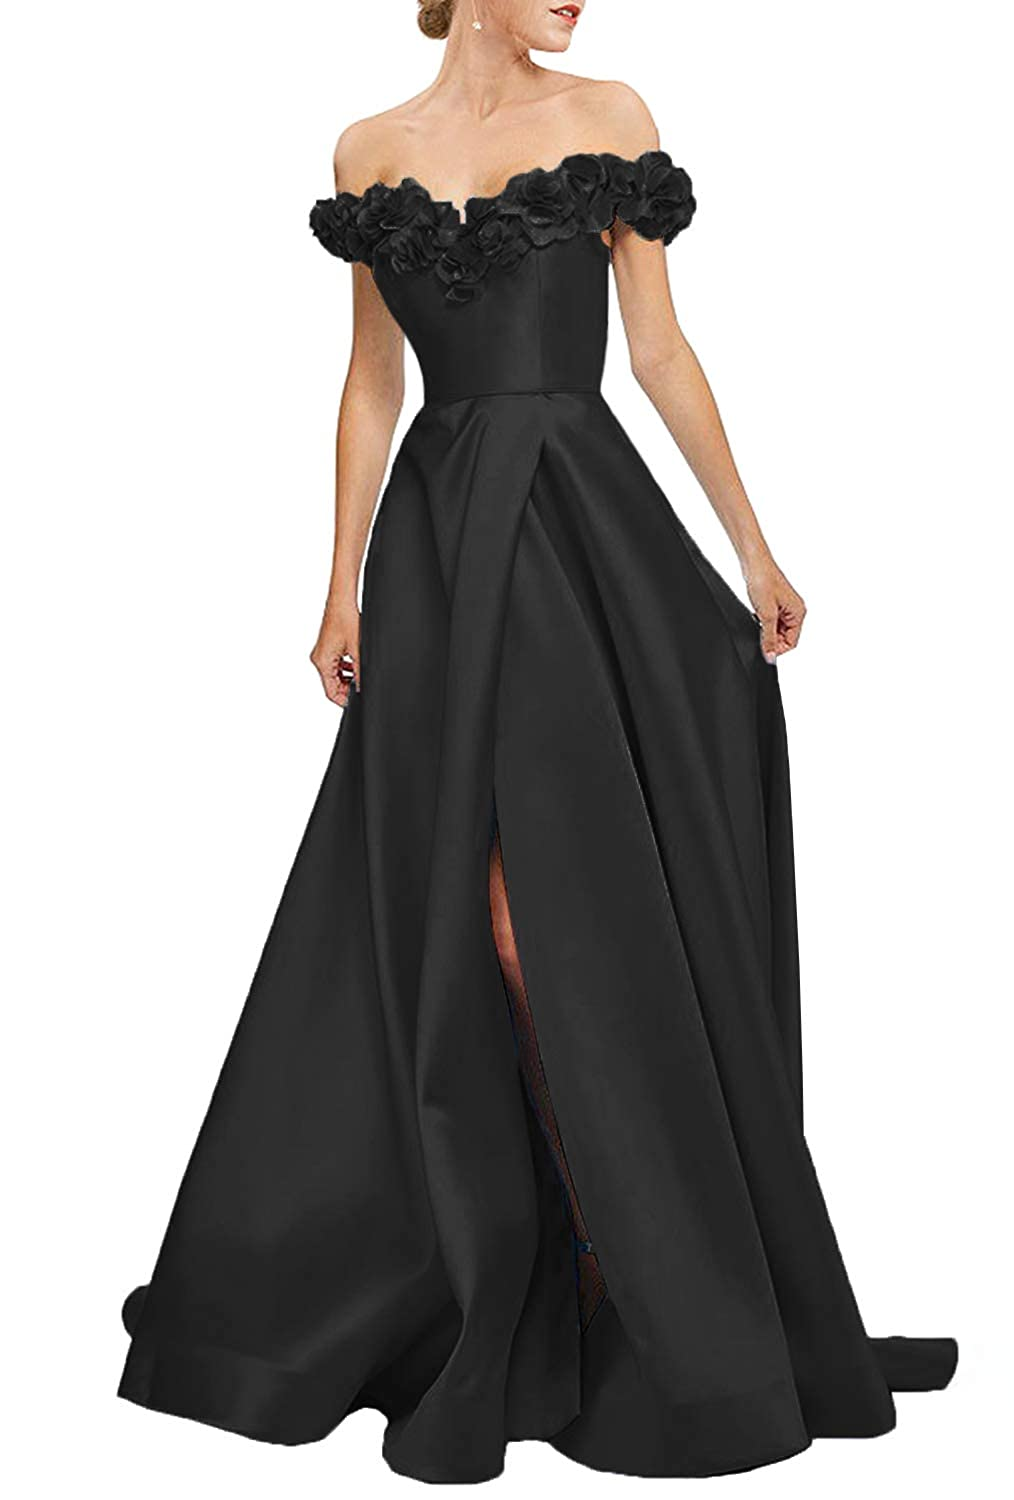 Black Uryouthstyle Strapless Corset Floral Slit Satin Prom Party Dresses Long